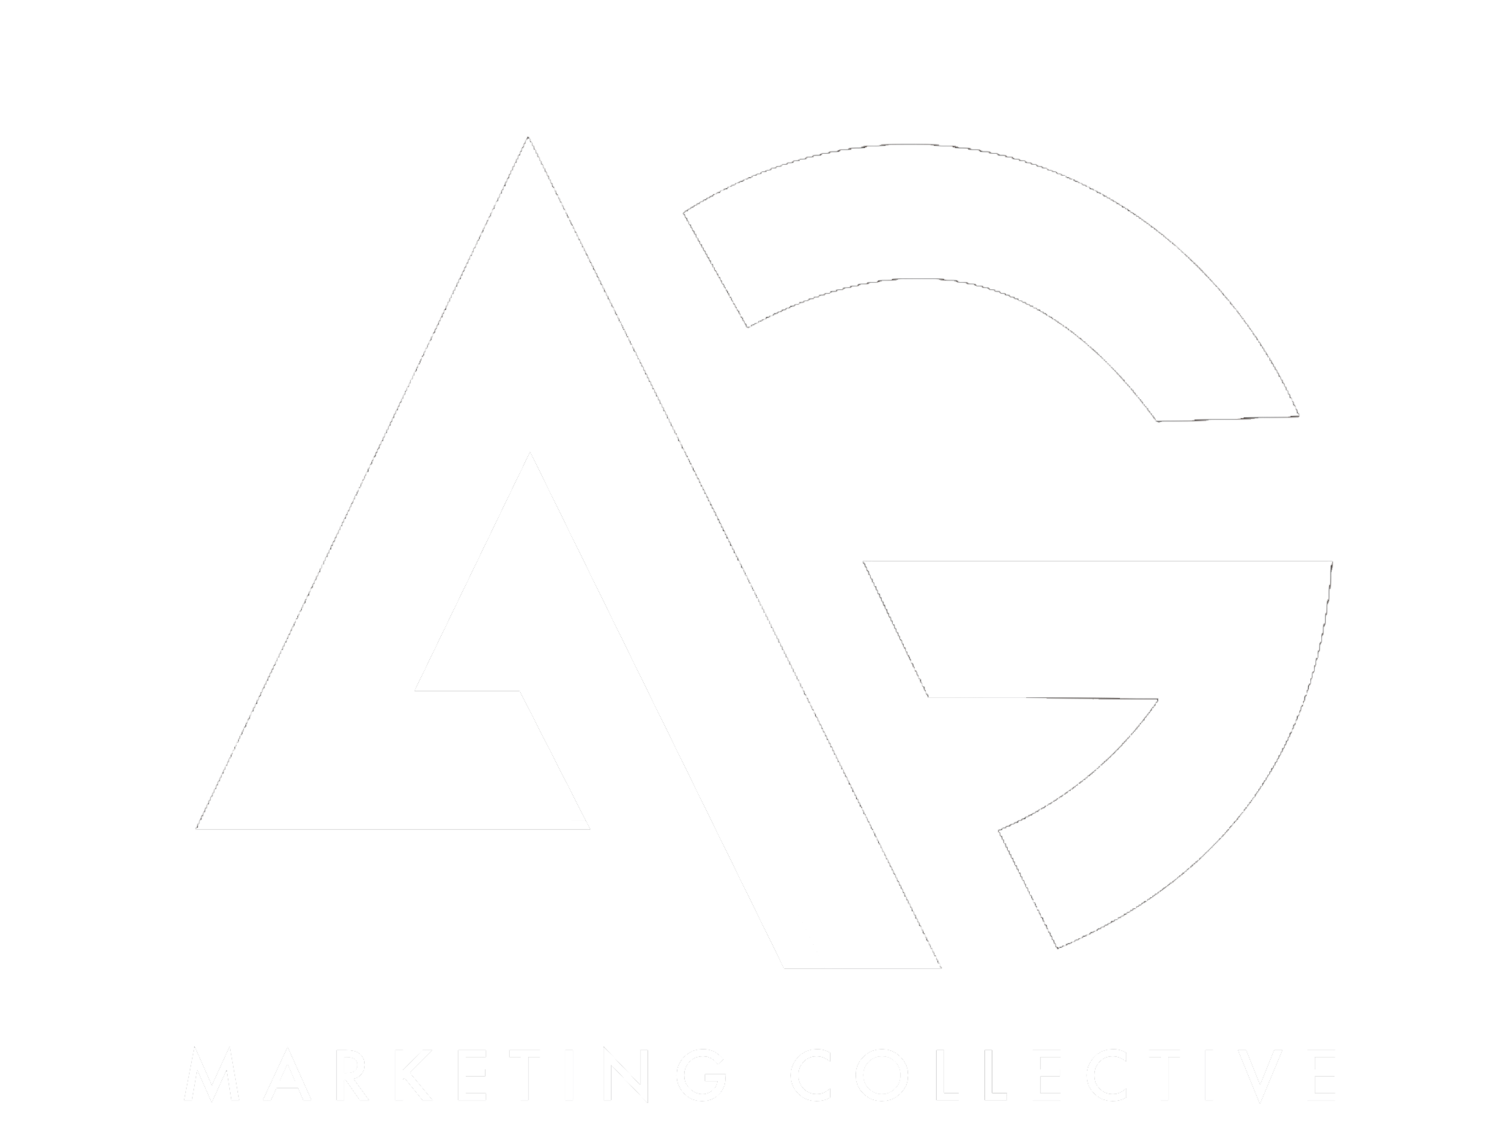 Aaron Grijalva, Marketing agency & consultant for small business and non-profits. Website design, branding, Johns Creek